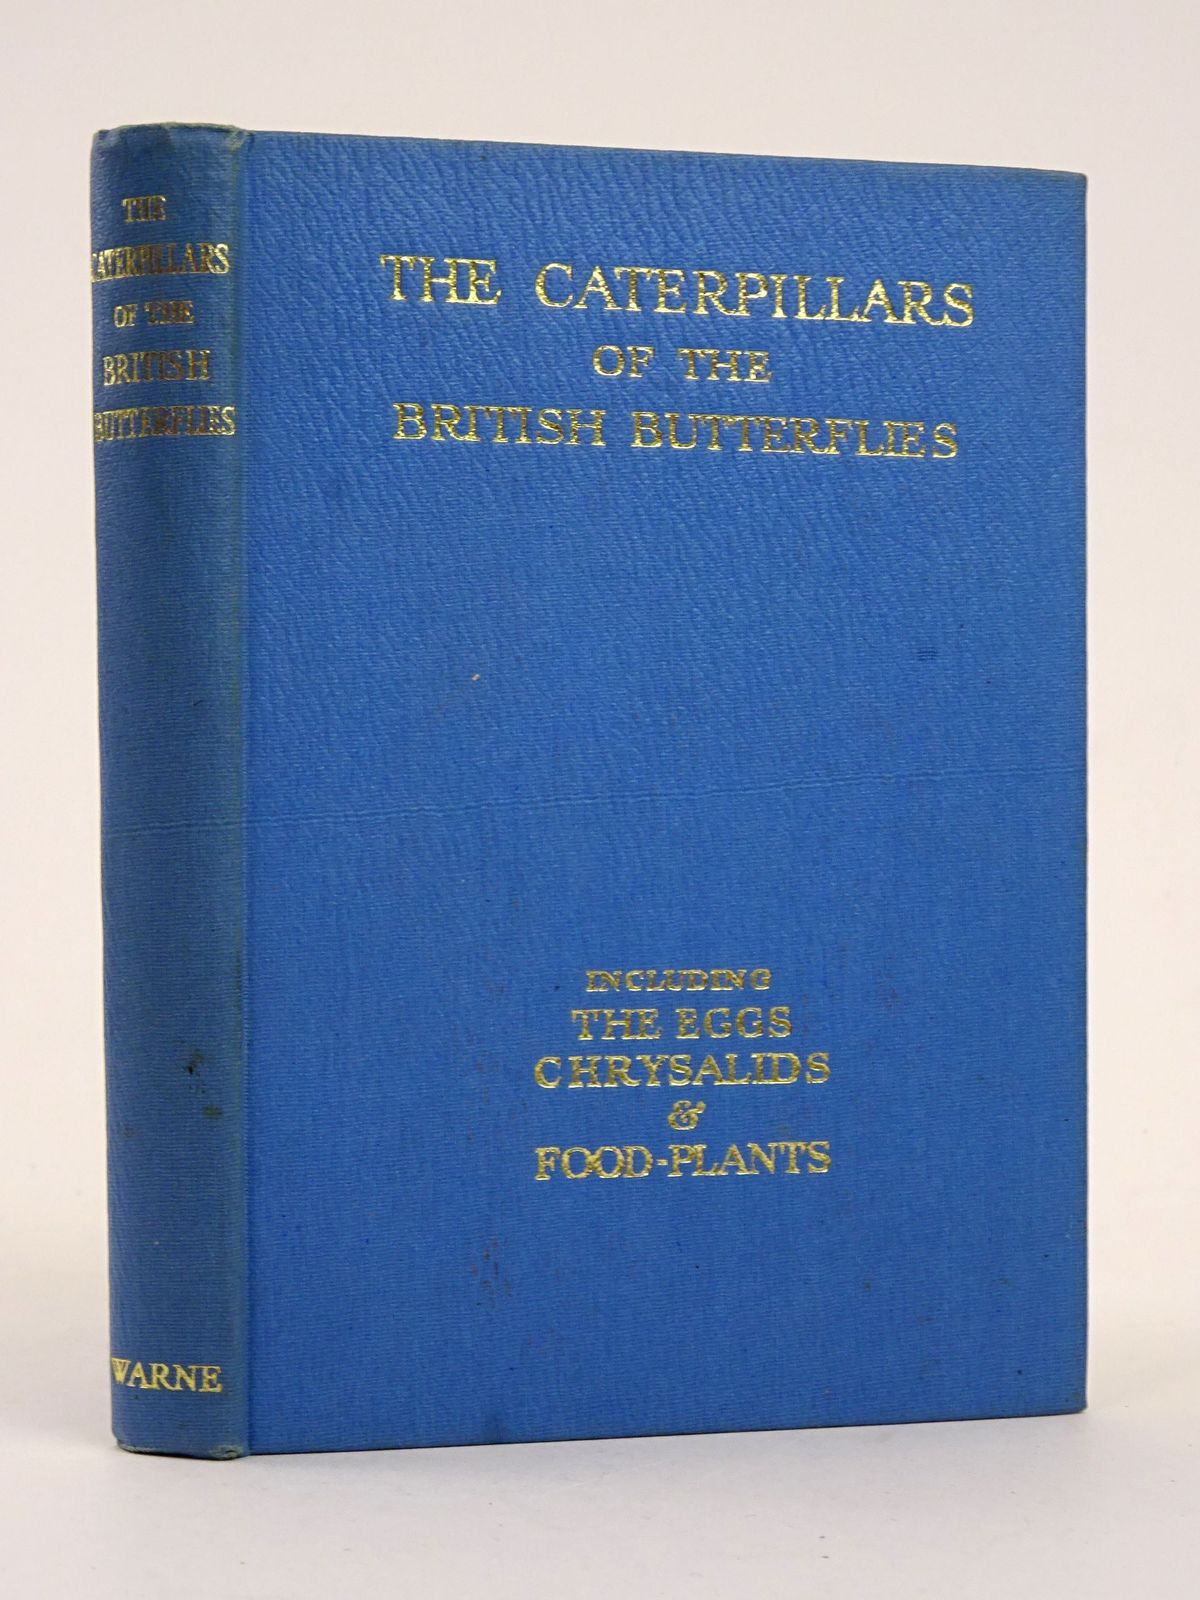 Photo of THE CATERPILLARS OF THE BRITISH BUTTERFLIES INCLUDING THE EGGS, CHRYSALIDS AND FOOD-PLANTS- Stock Number: 1818329